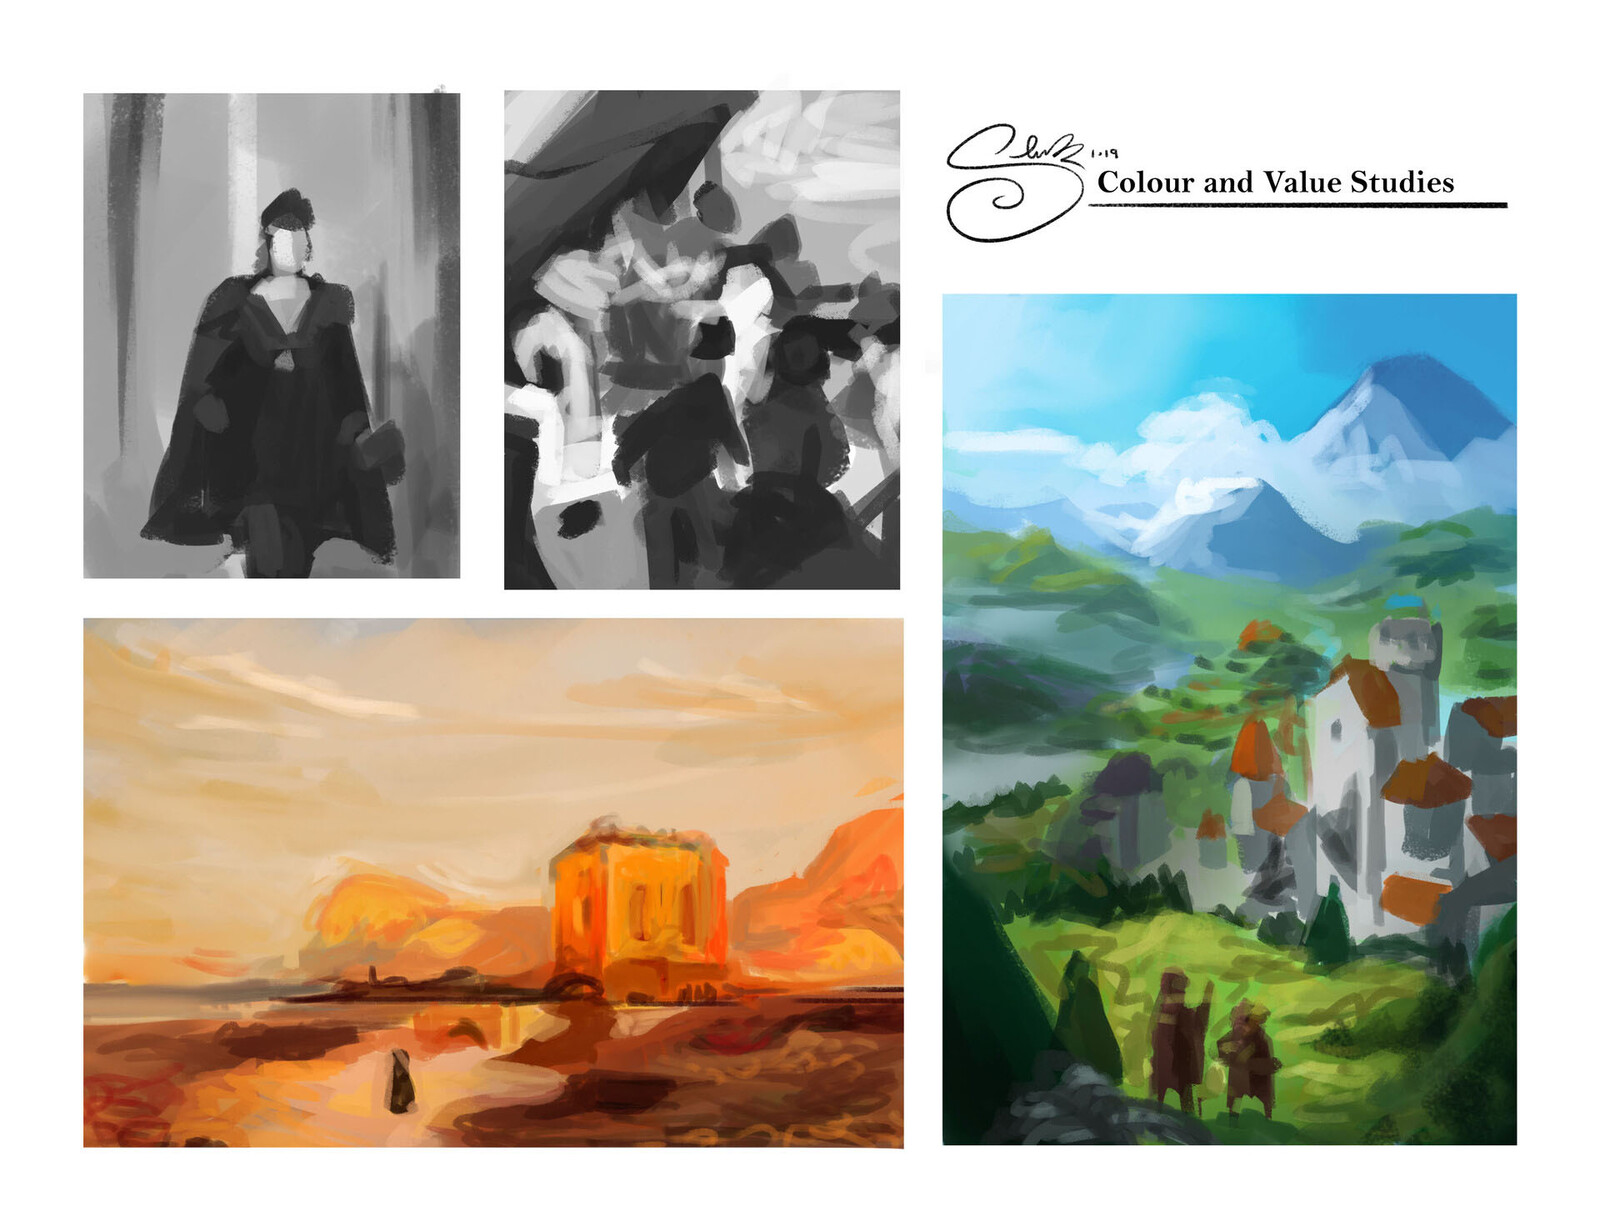 Colour and Value Studies